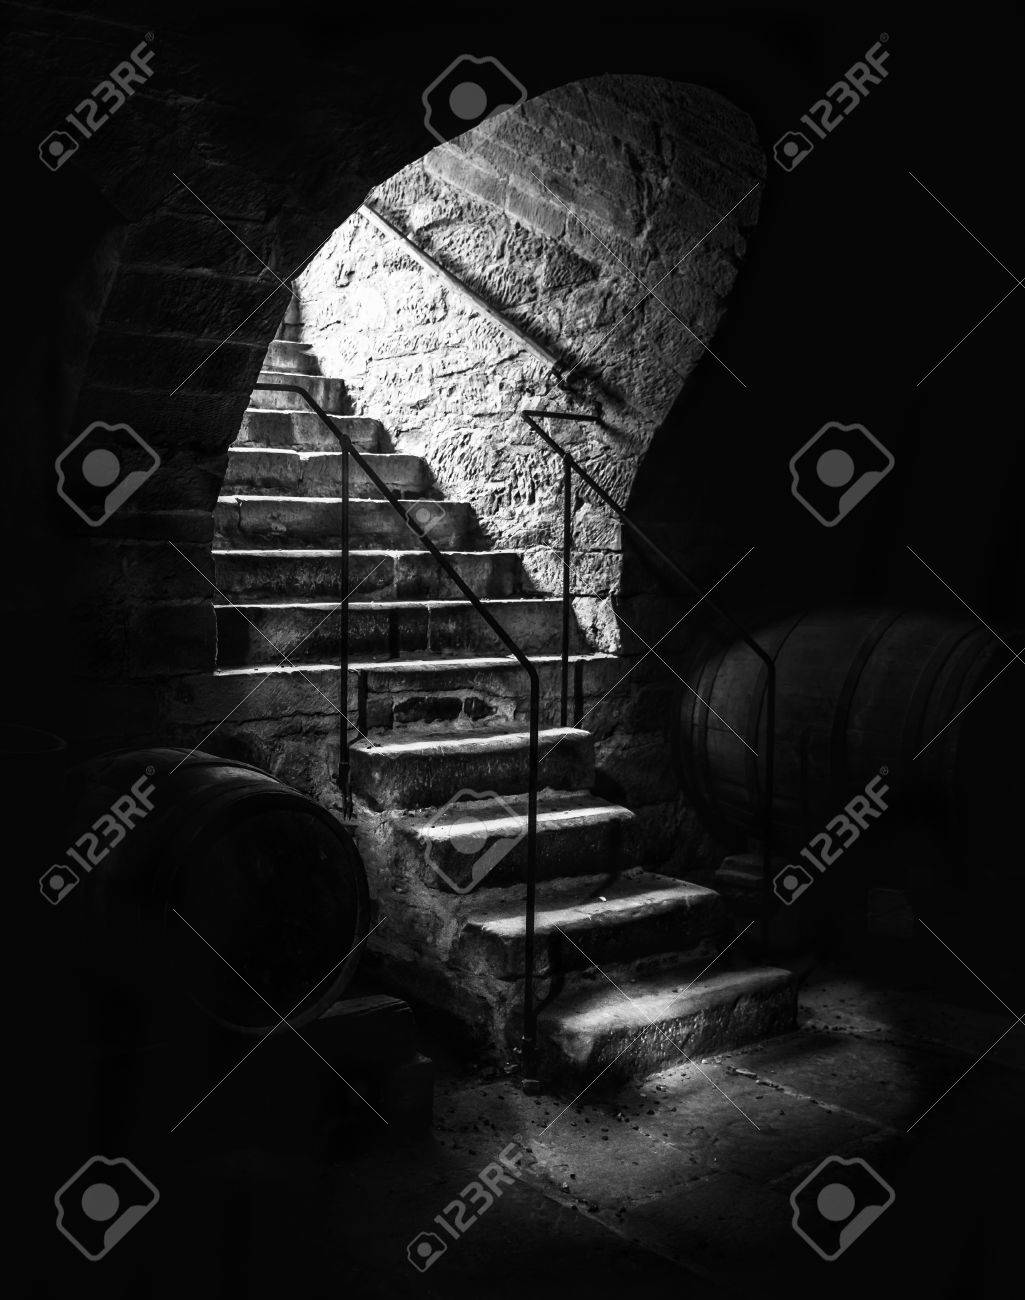 Old cellar staircase in low light dramatic black and white image with aged stone stairs